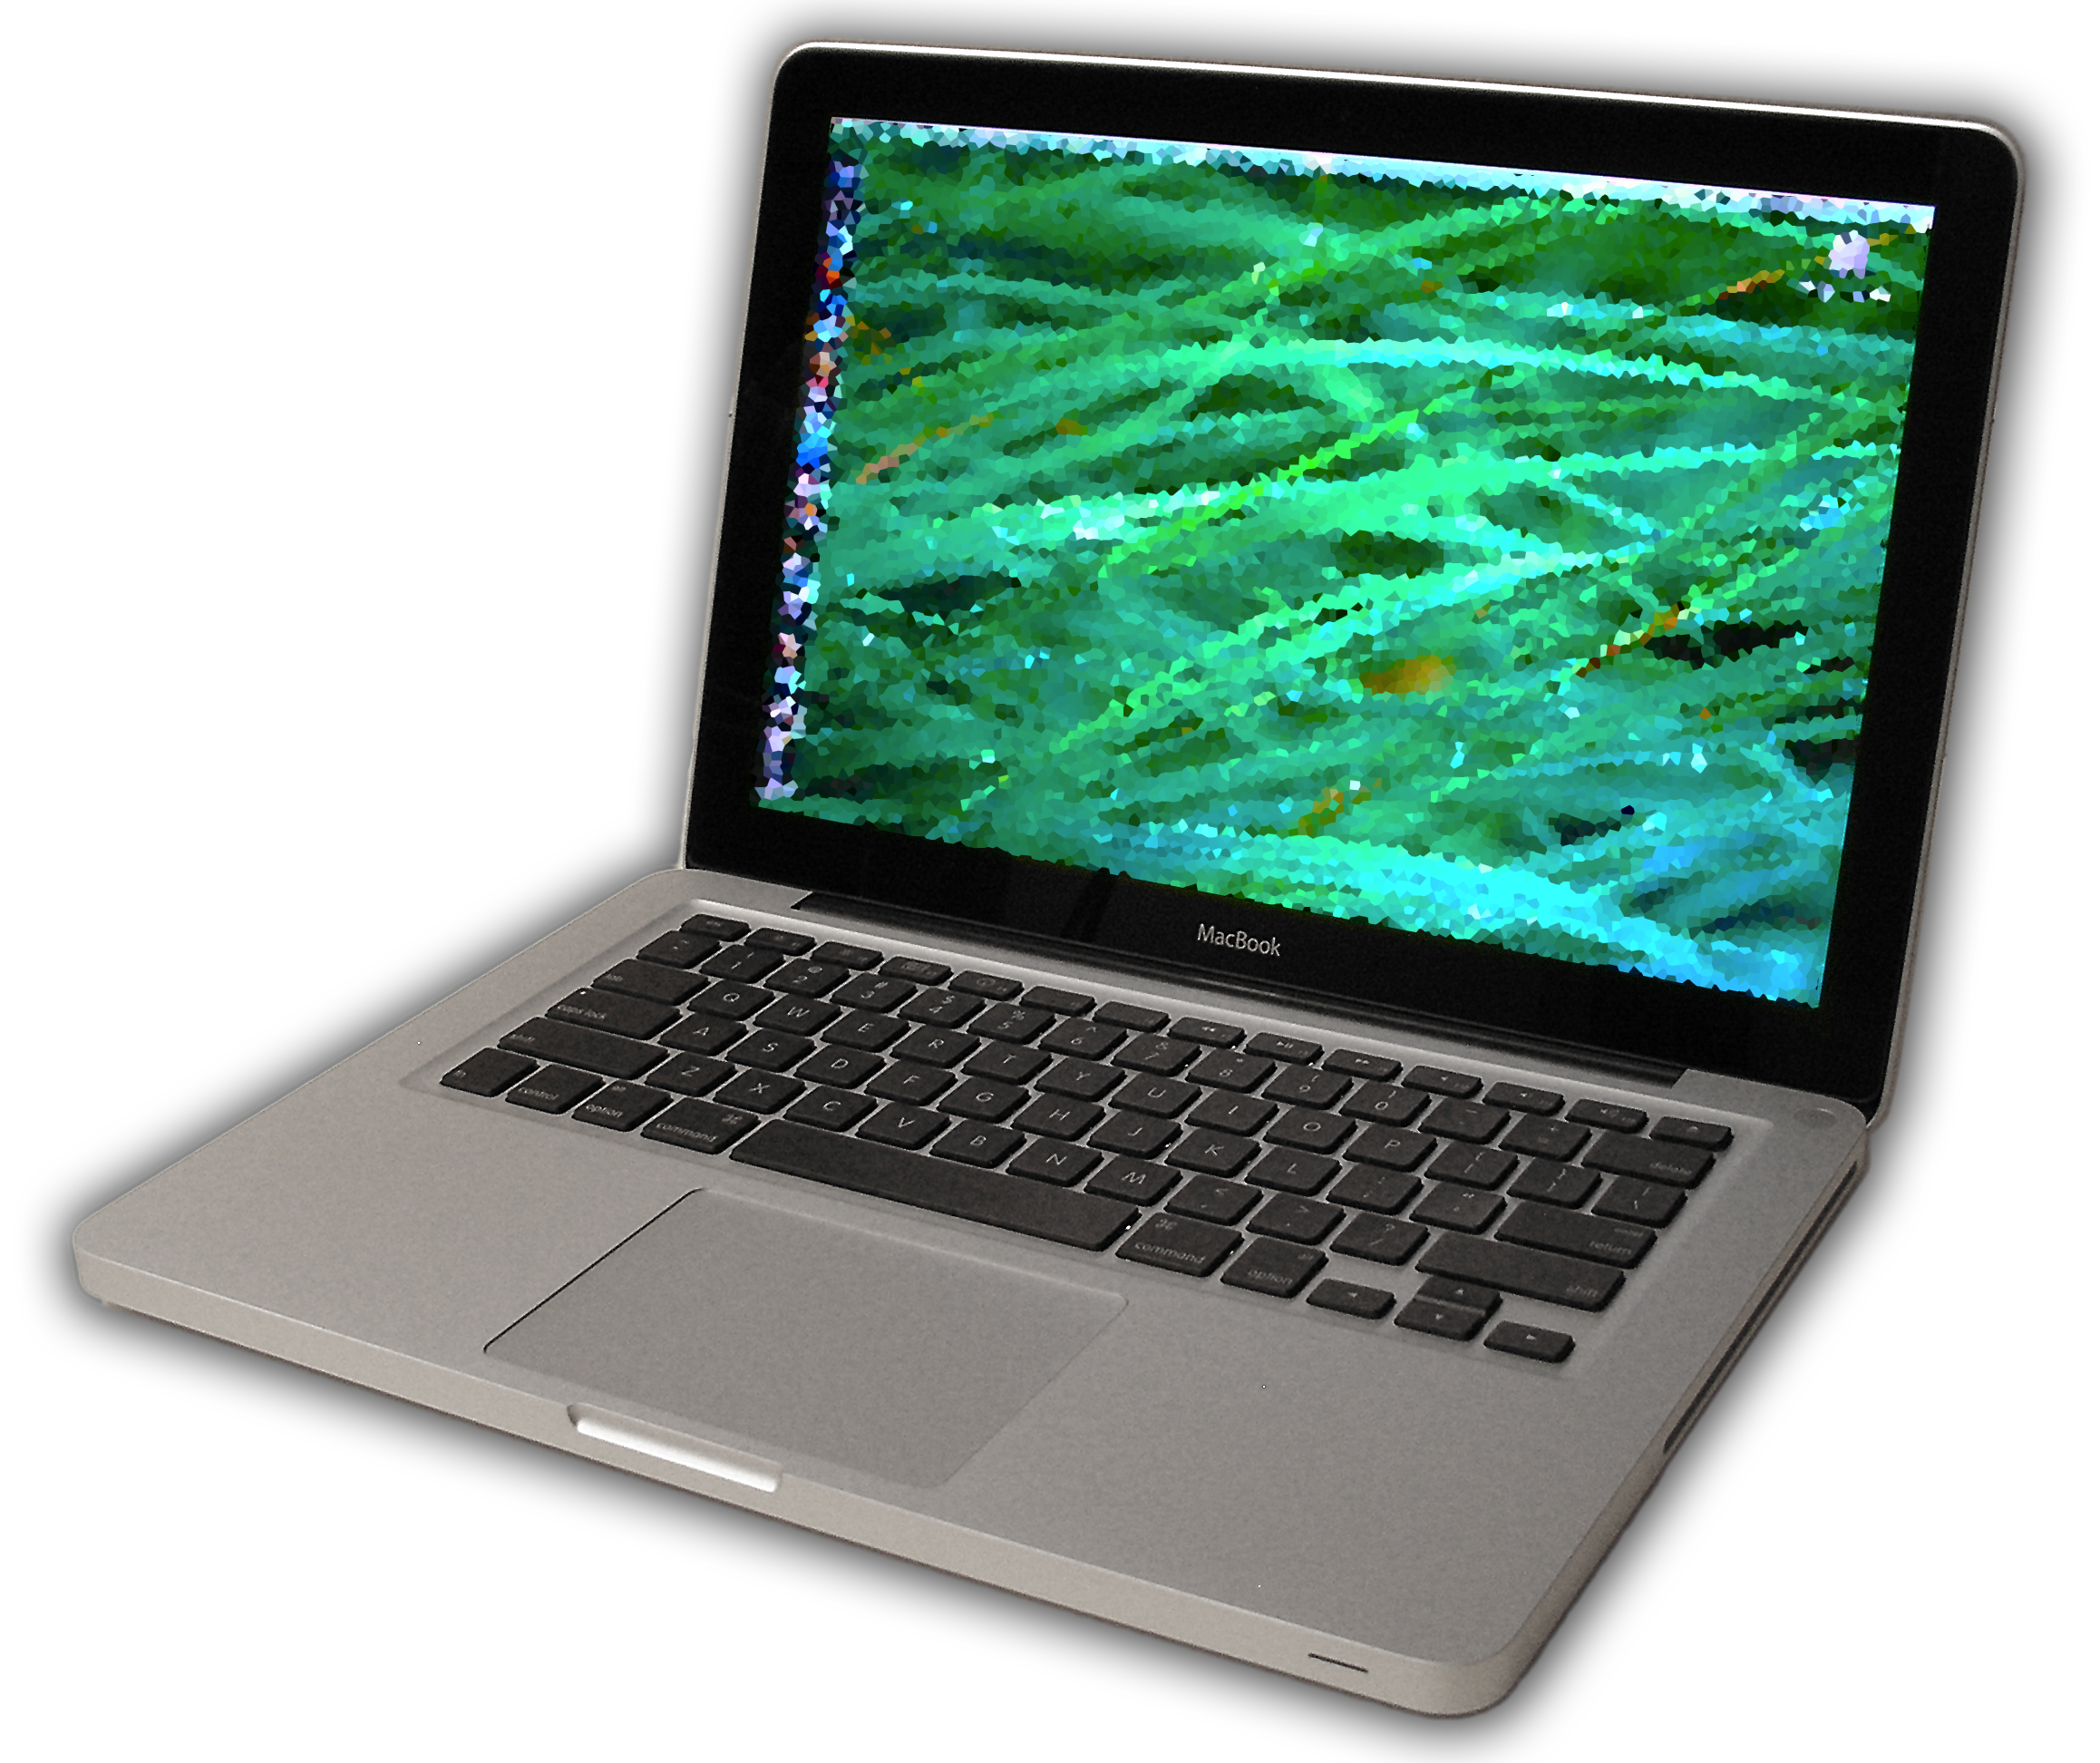 Science And Technology Wonders Macbook Photos image #47625